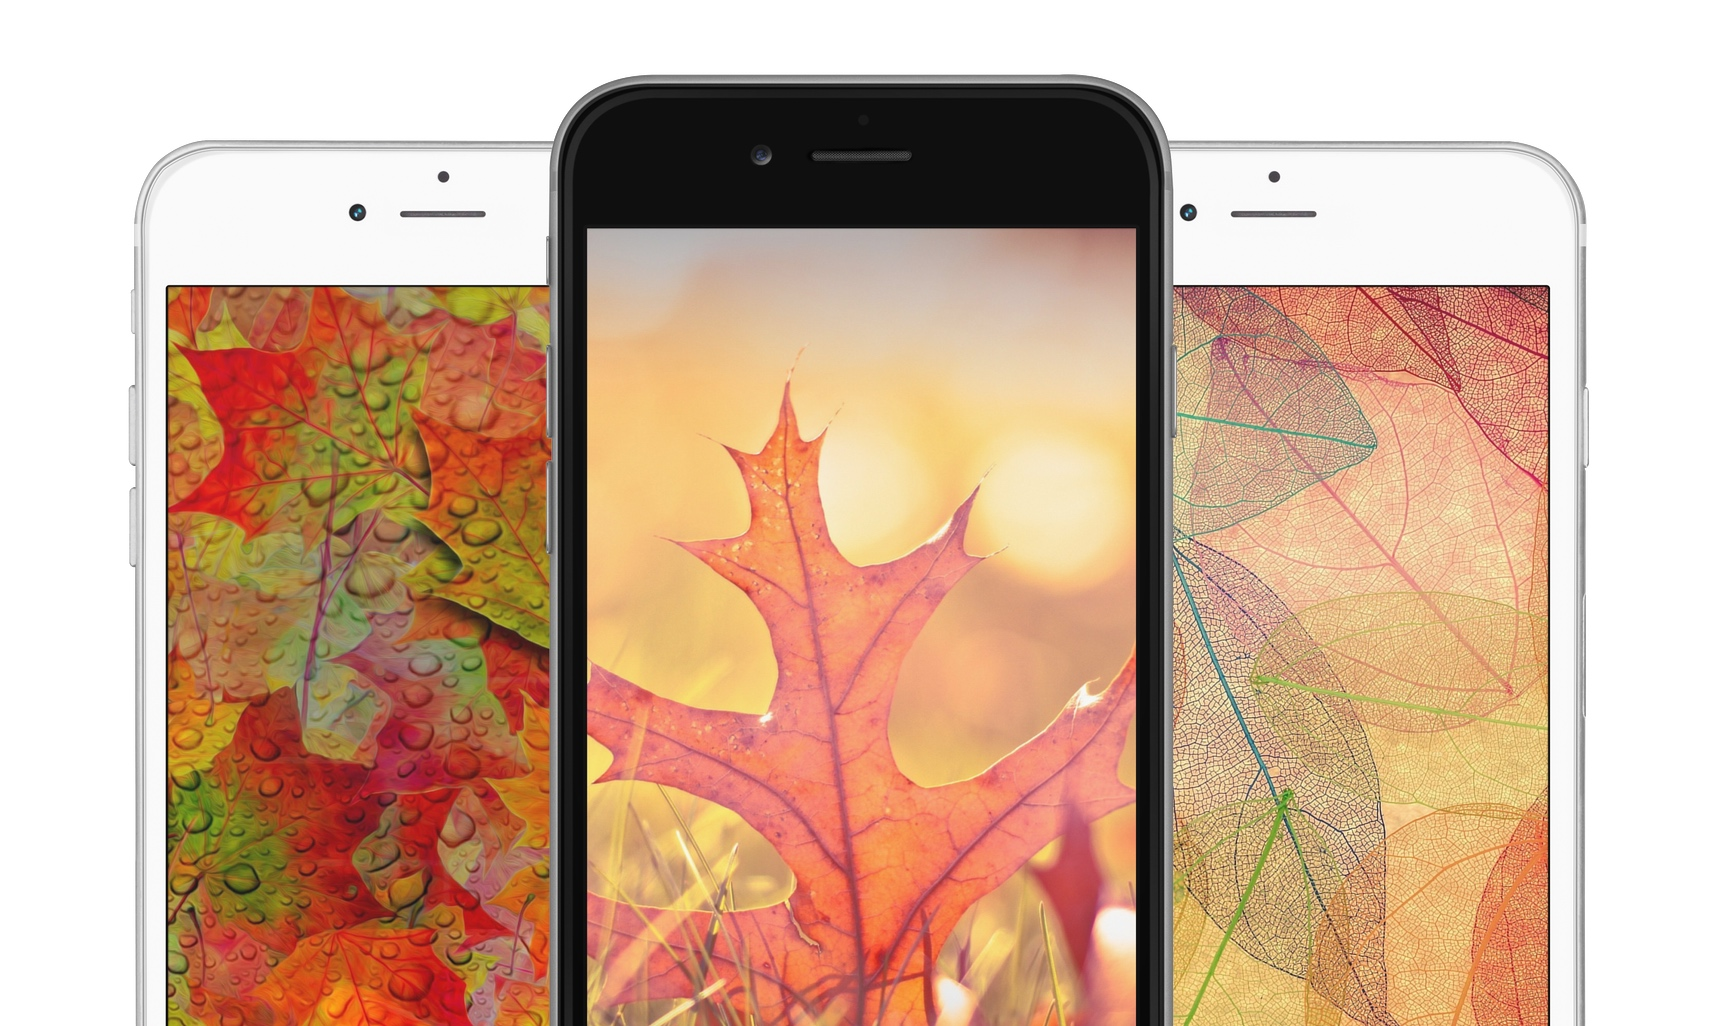 iDownloadBlog fall autumn wallpaper splash